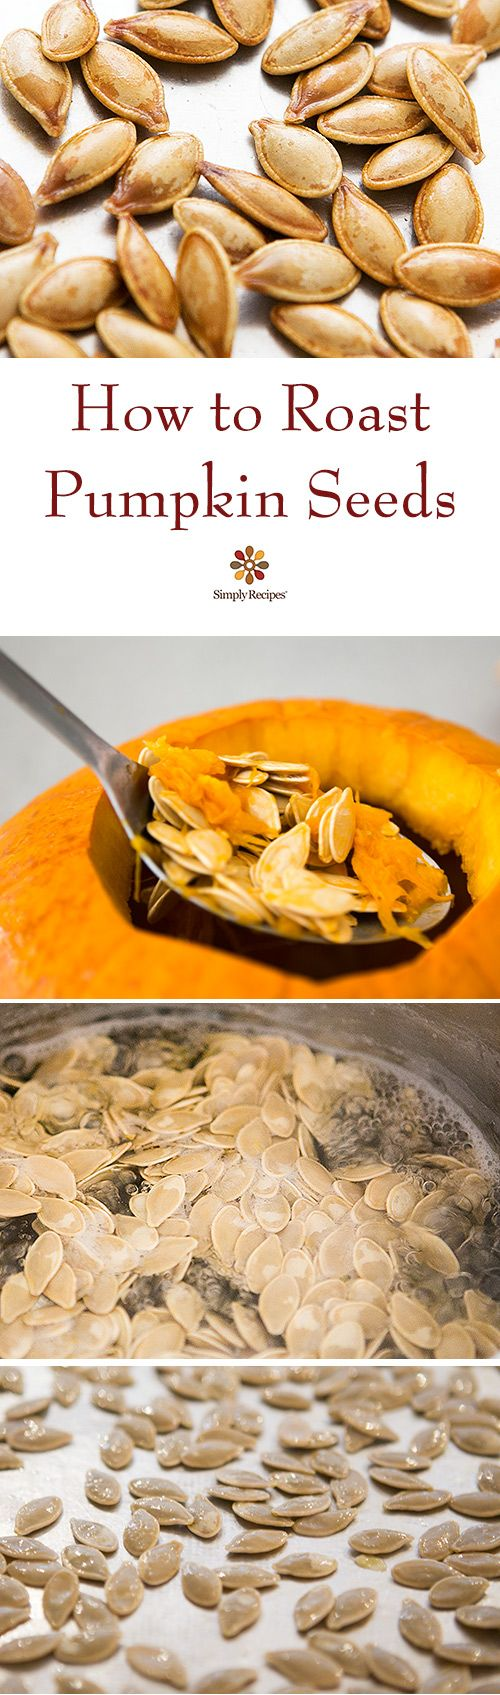 This is the best way I've found to roast pumpkin seeds, so the salt penetrates all the way to the inside seed. Roasted pumpkin seeds are the perfect fall snack—easy, crunchy, and irresistible! On SimplyRecipes.com